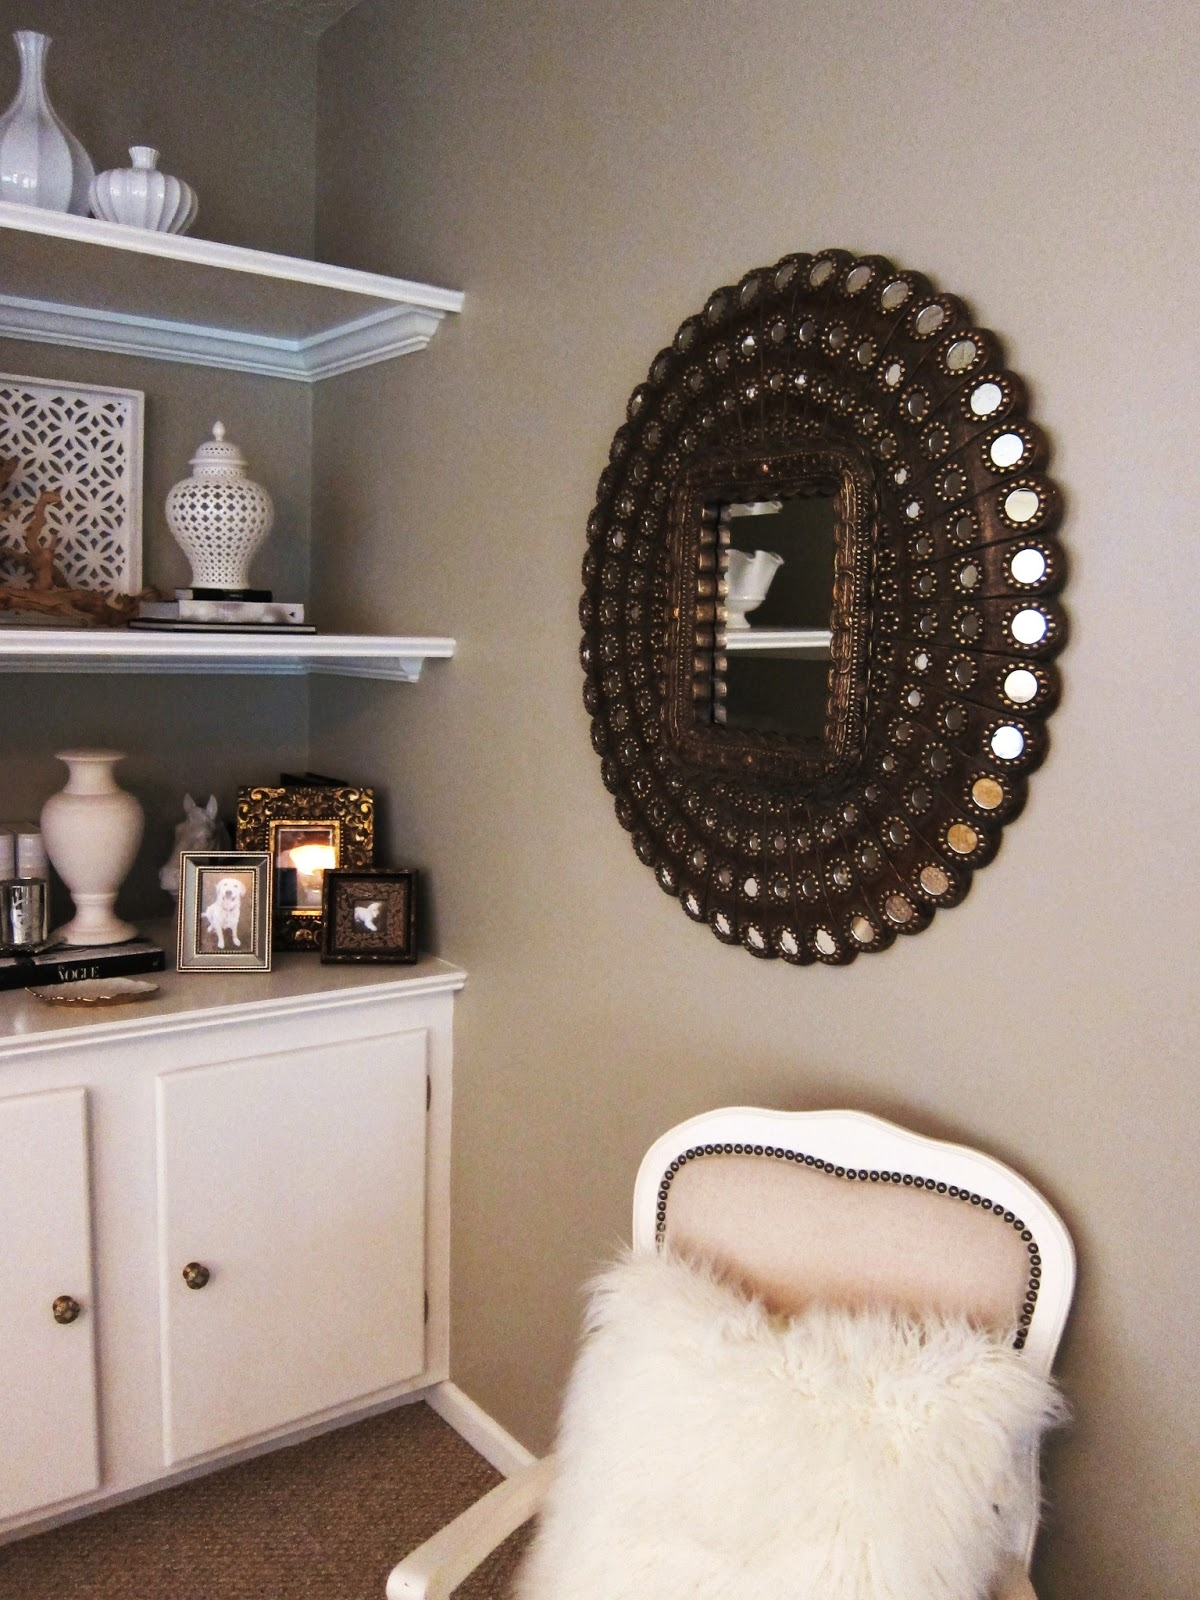 Home Decor Mirrors Home Design Ideas Intended For Small Decorative Mirrors Cheap (Image 4 of 15)